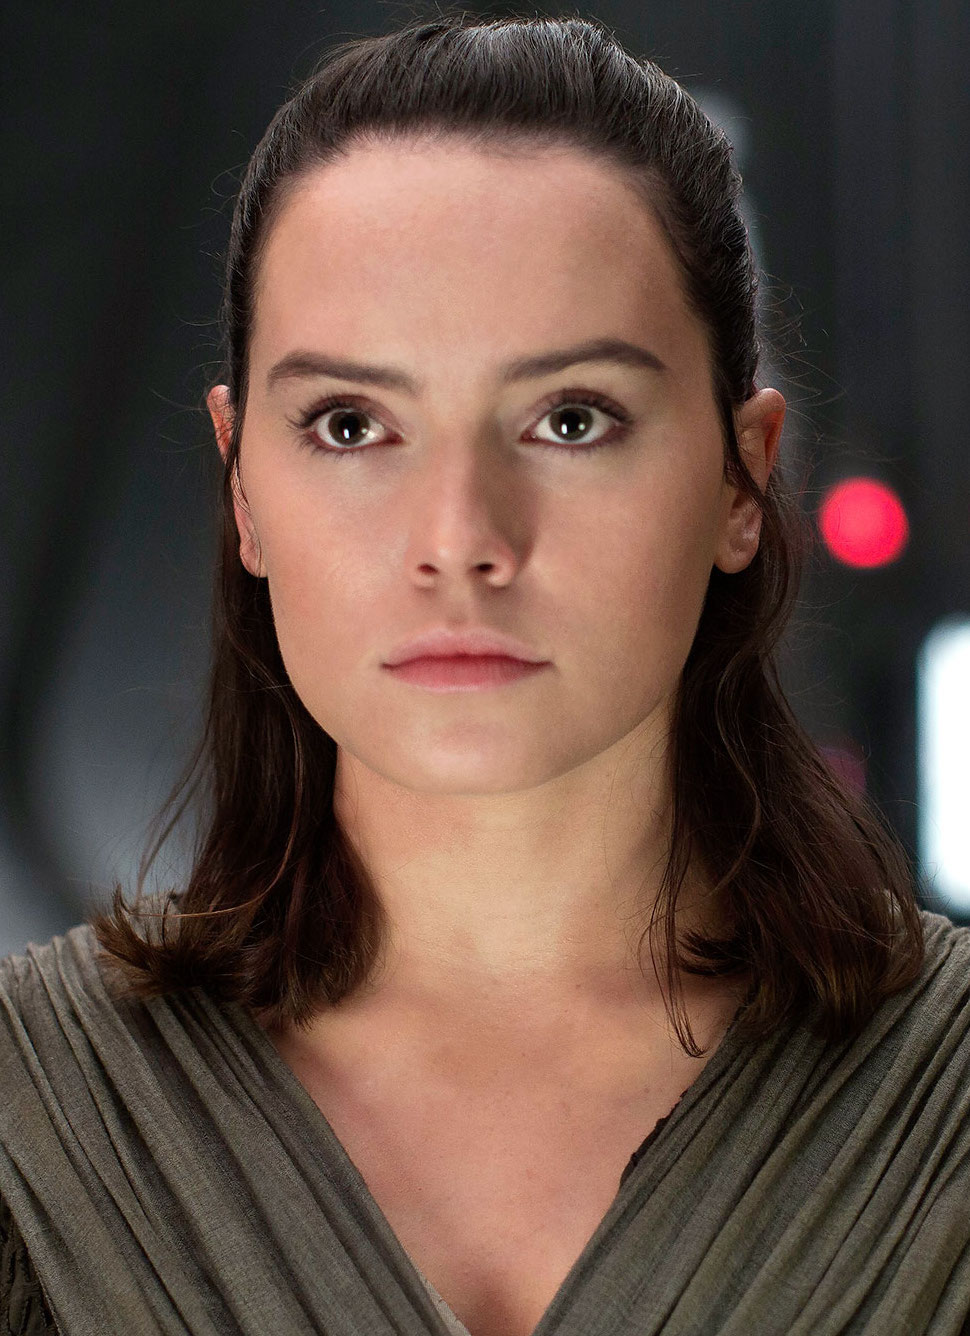 This is a copyrighted promotional image. It is believed that the copyright holder has granted permission for use under the fair use provision of United States copyright law. Source:      Ren vs. Rey: In The Last Jedi, the danger is becoming allies instead of enemies. Entertainment Weekly via Wookieepedia